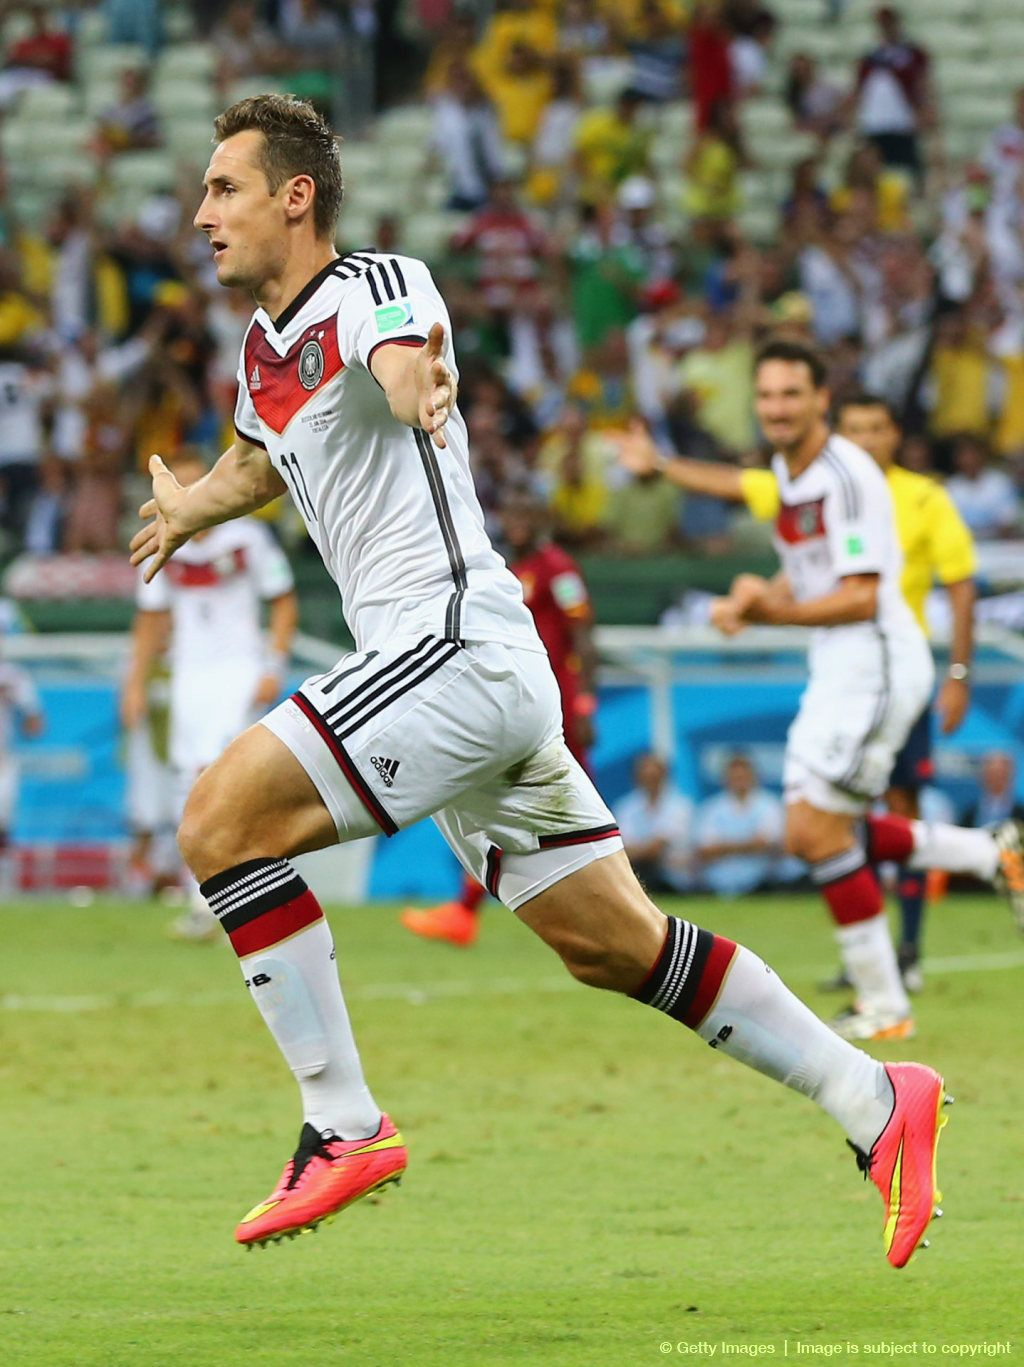 Brazil Legend Ronaldo Has Congratulated Miroslav Klose On Equalling His World Cup Scoring Record After The Germany Soccer Team Germany Football Miroslav Klose